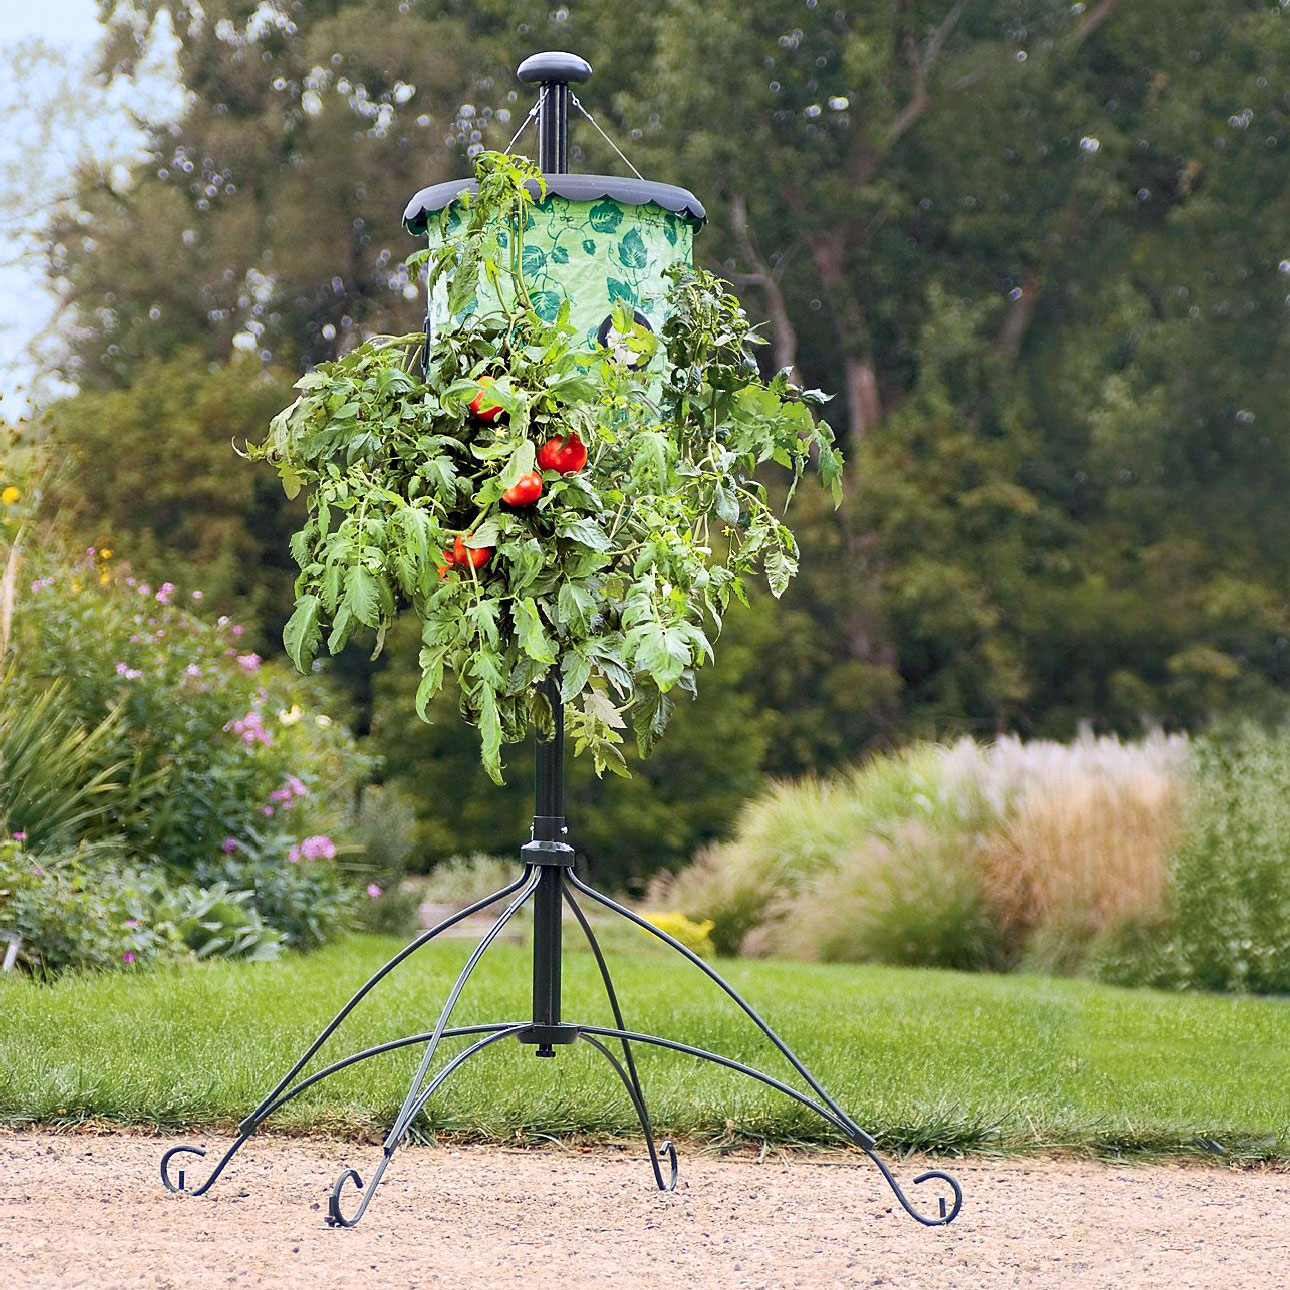 Super size topsy turvy upside down tomato tree the green head - Upside down gardening ...